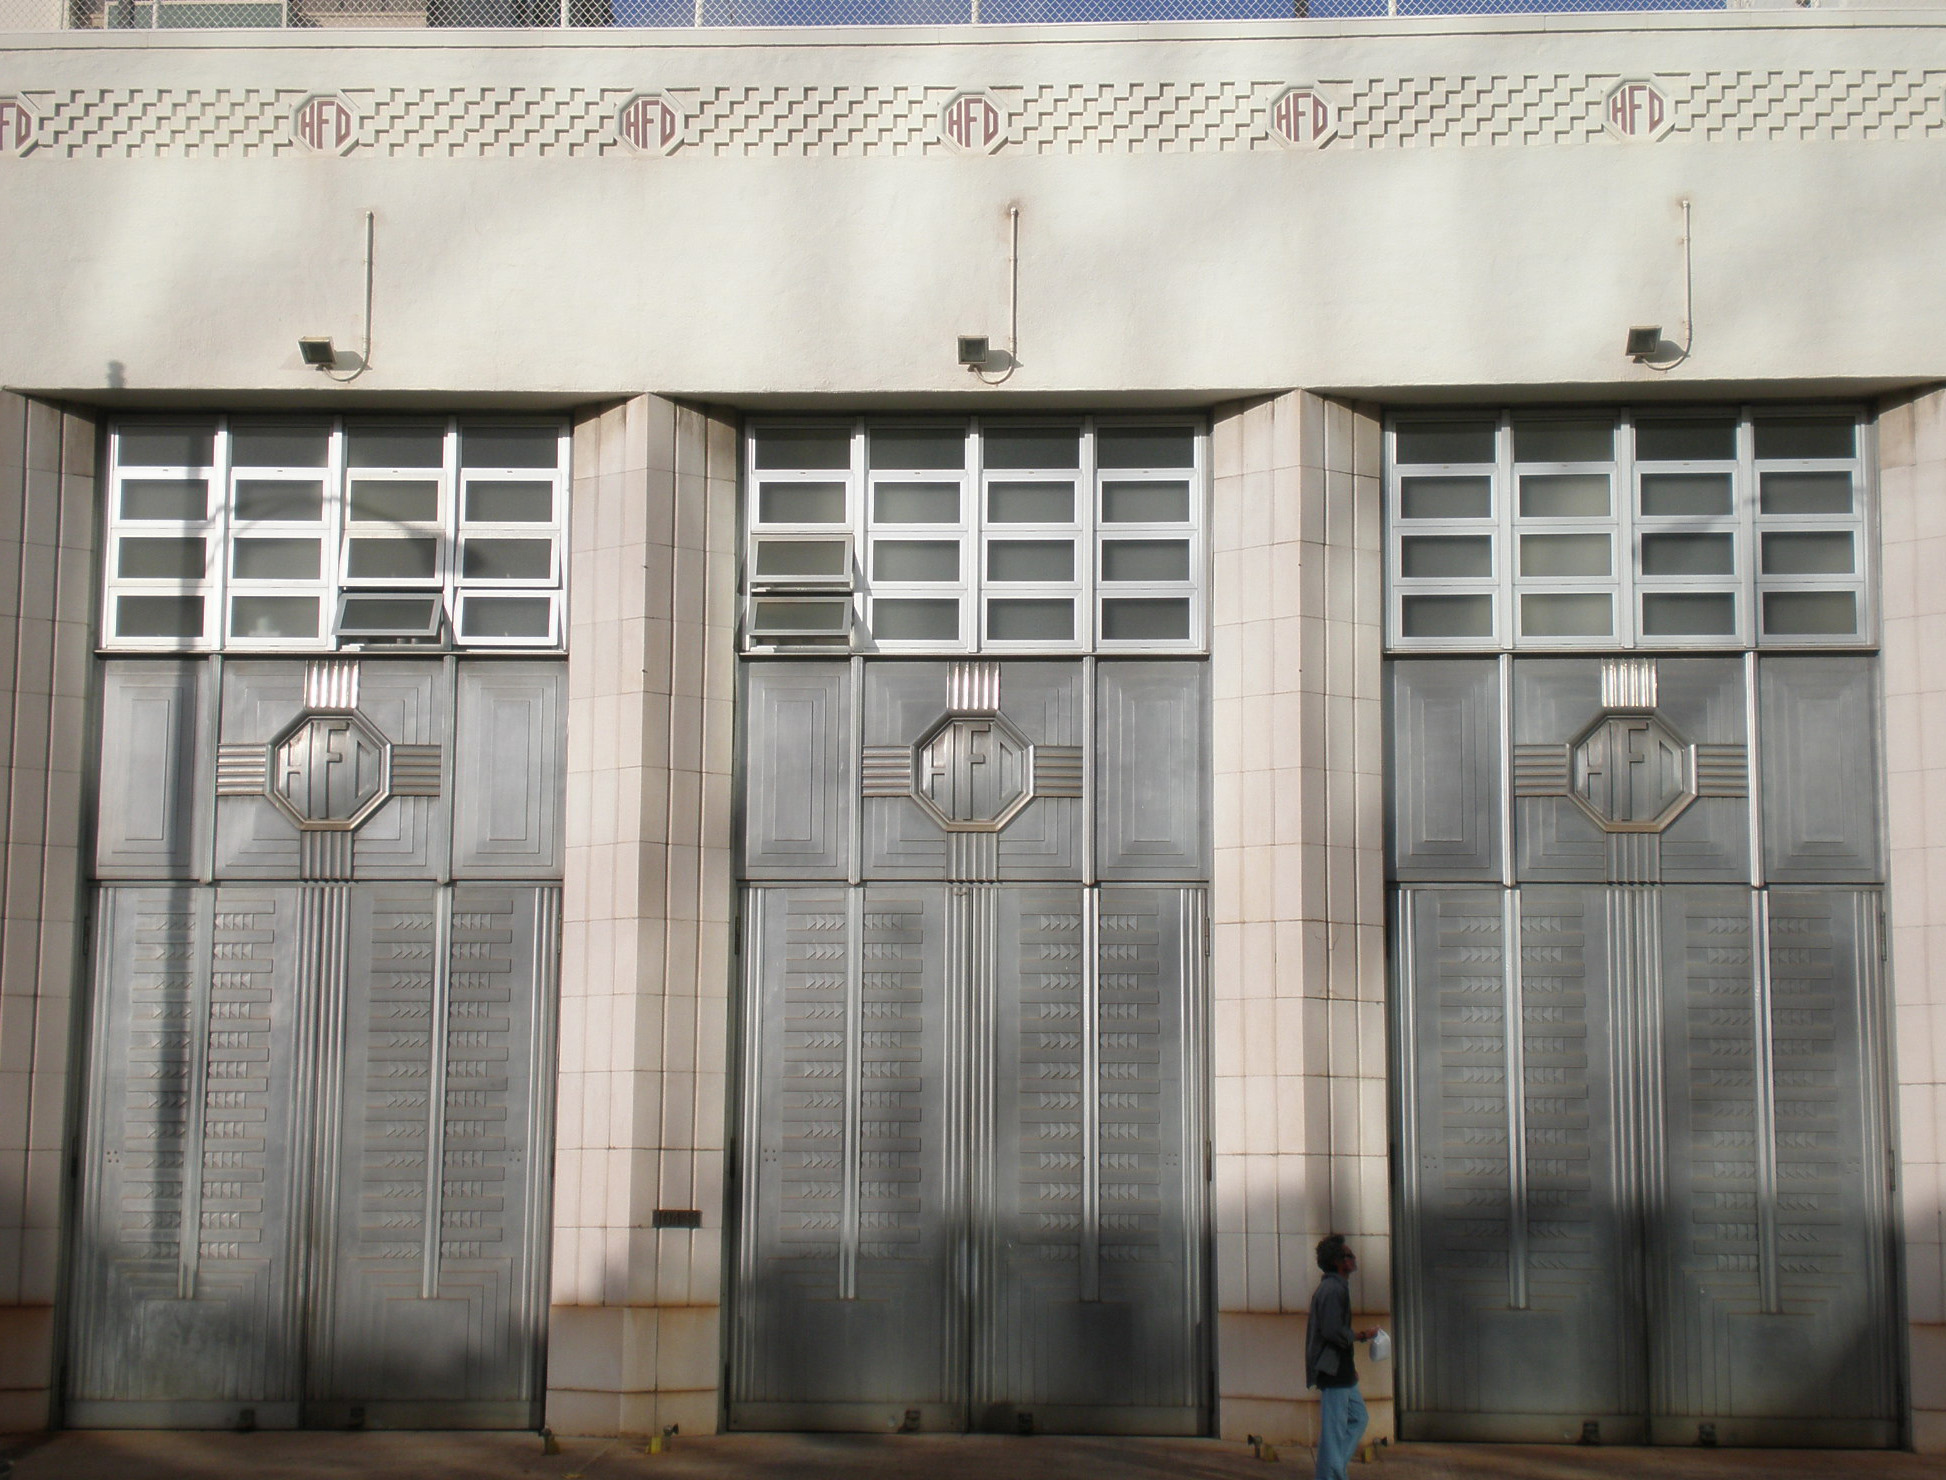 FileHonolulu-central-fire-station-doors.JPG & File:Honolulu-central-fire-station-doors.JPG - Wikimedia Commons pezcame.com